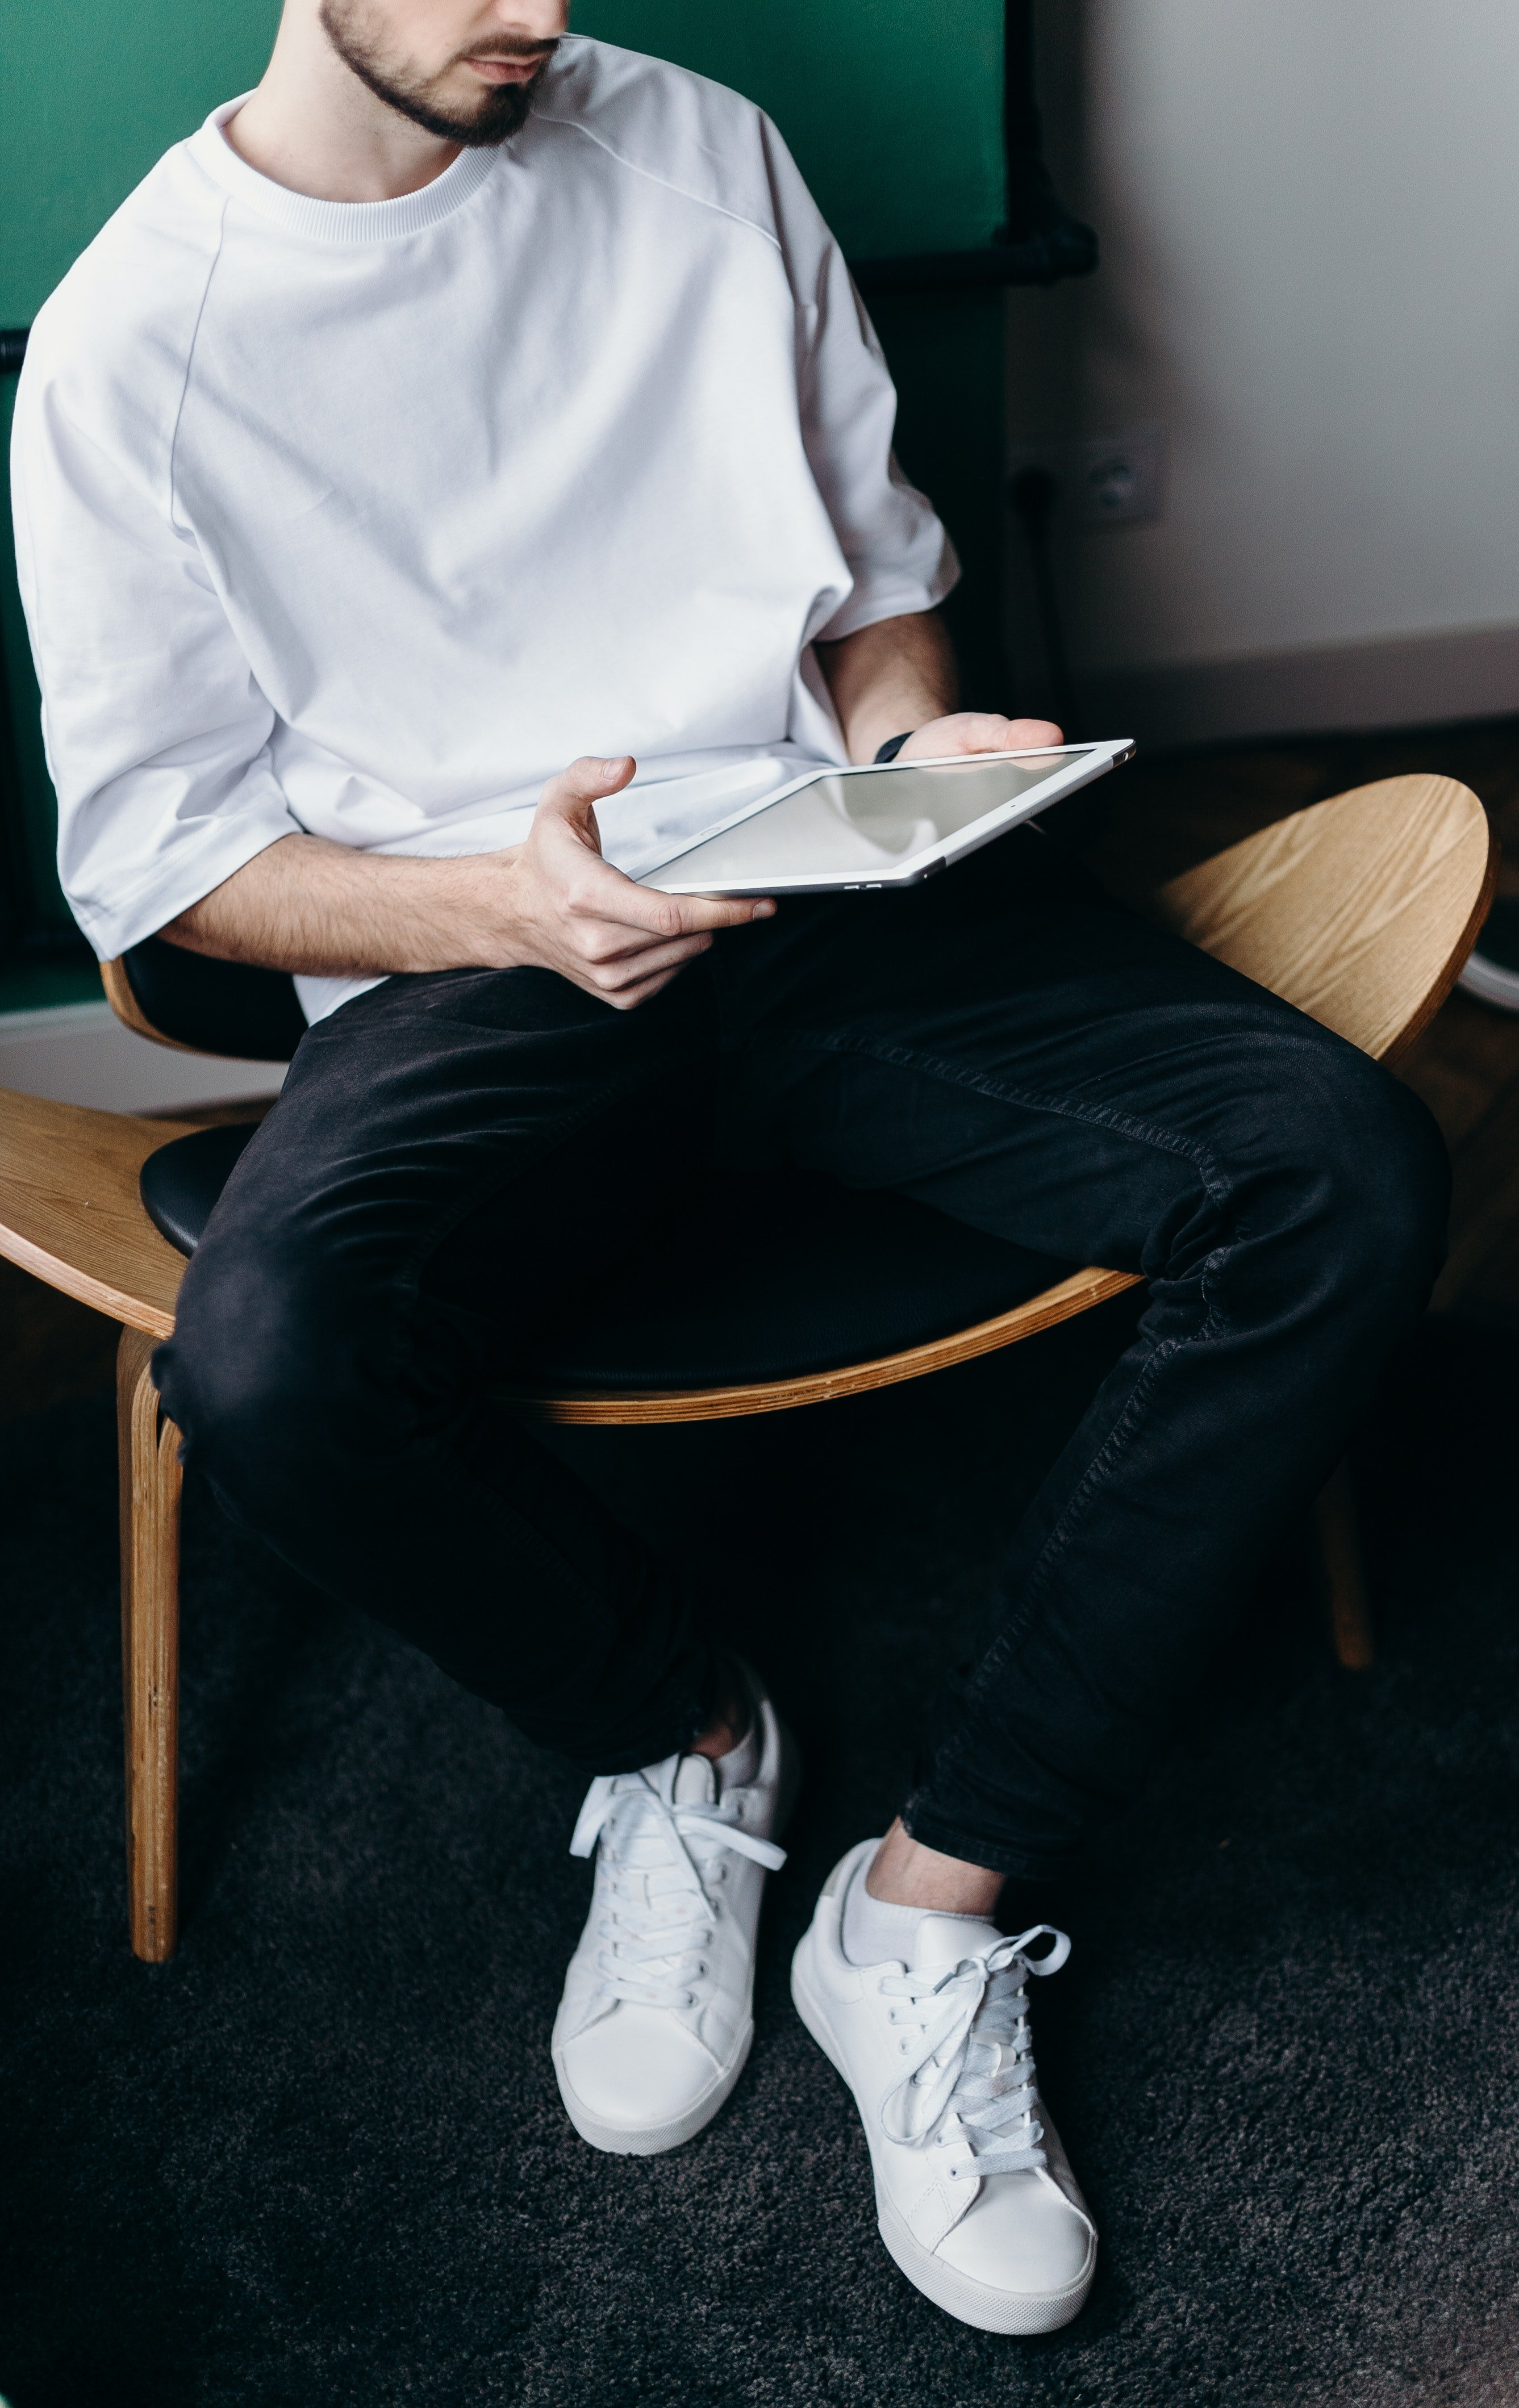 Ashley couldn't stop thinking about those white sneakers of his | Source: Pexels